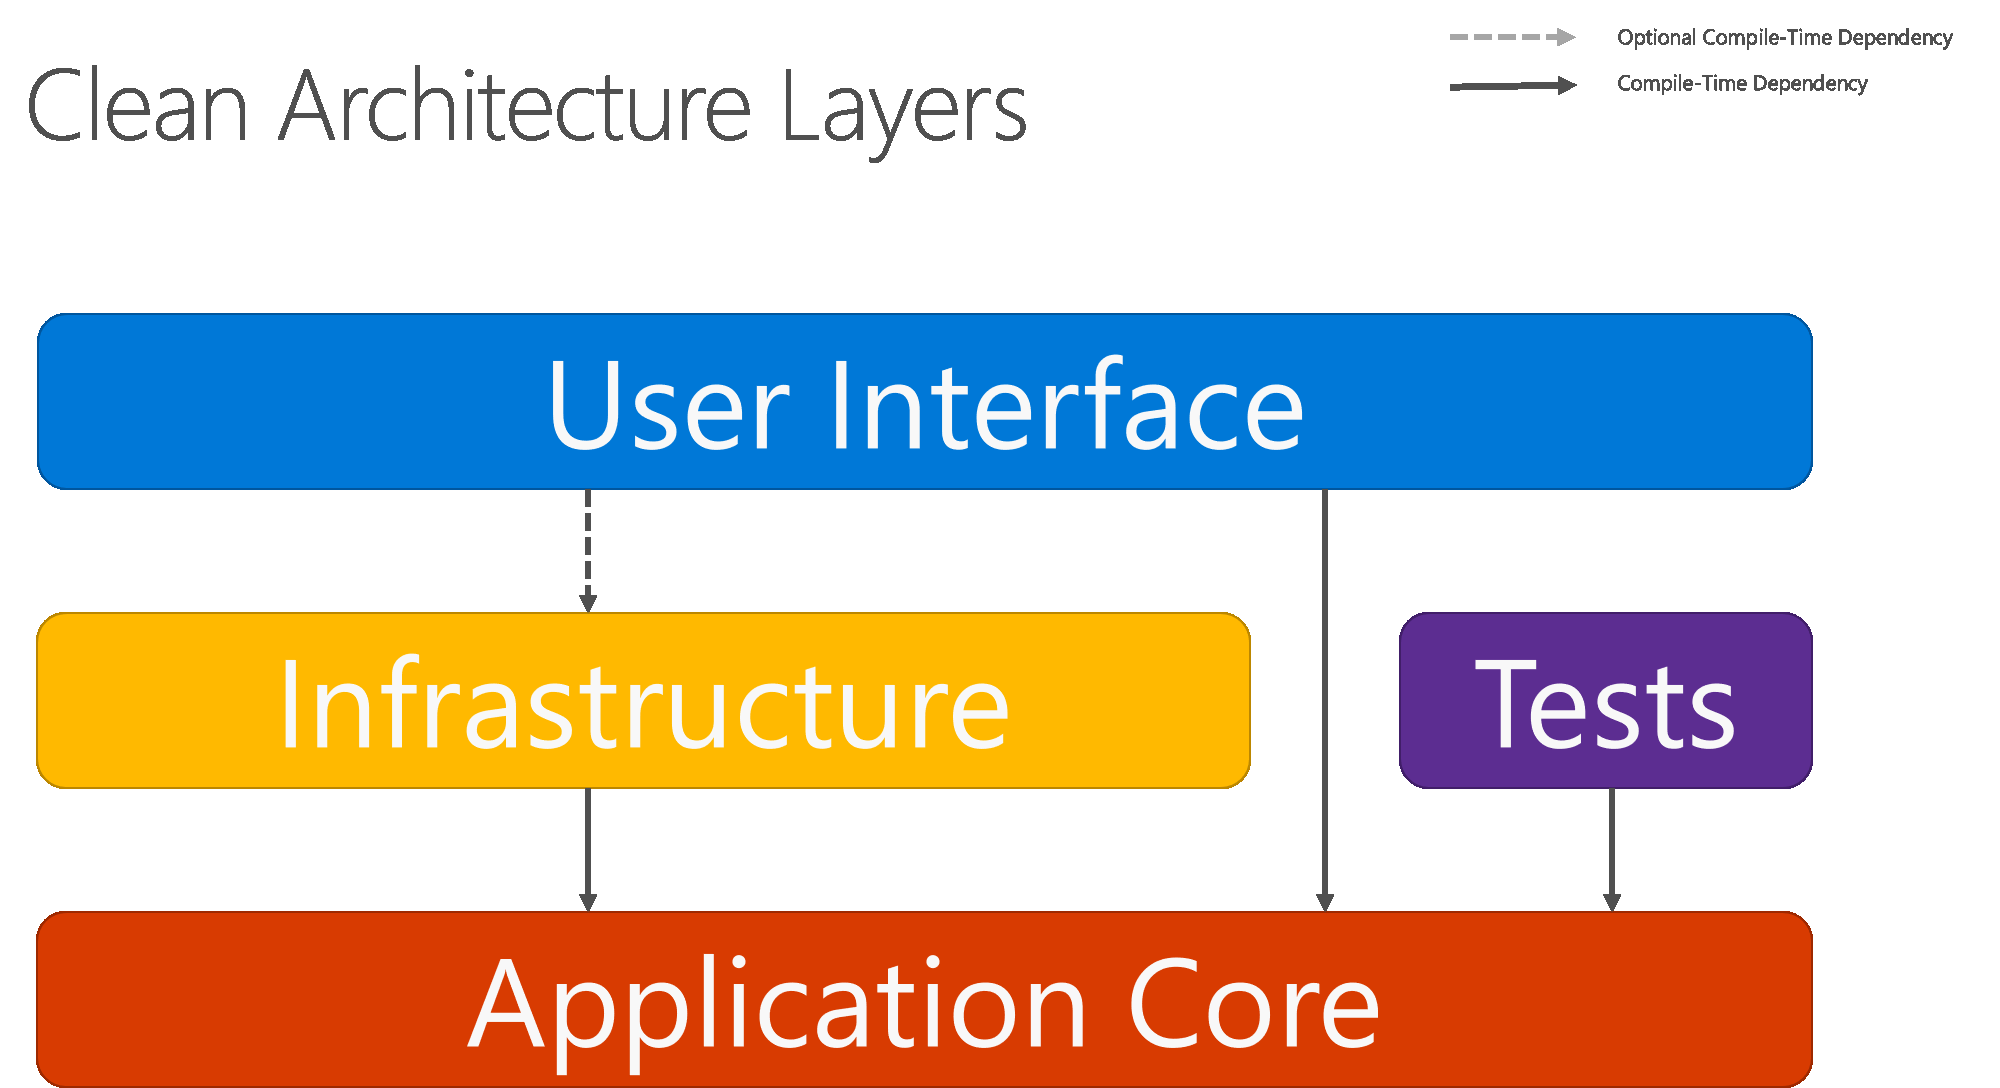 microsoft infrastructure diagram 3 way diverter valve wiring common web application architectures docs figure 5 8 shows a more traditional horizontal layer that better reflects the dependency between ui and other layers